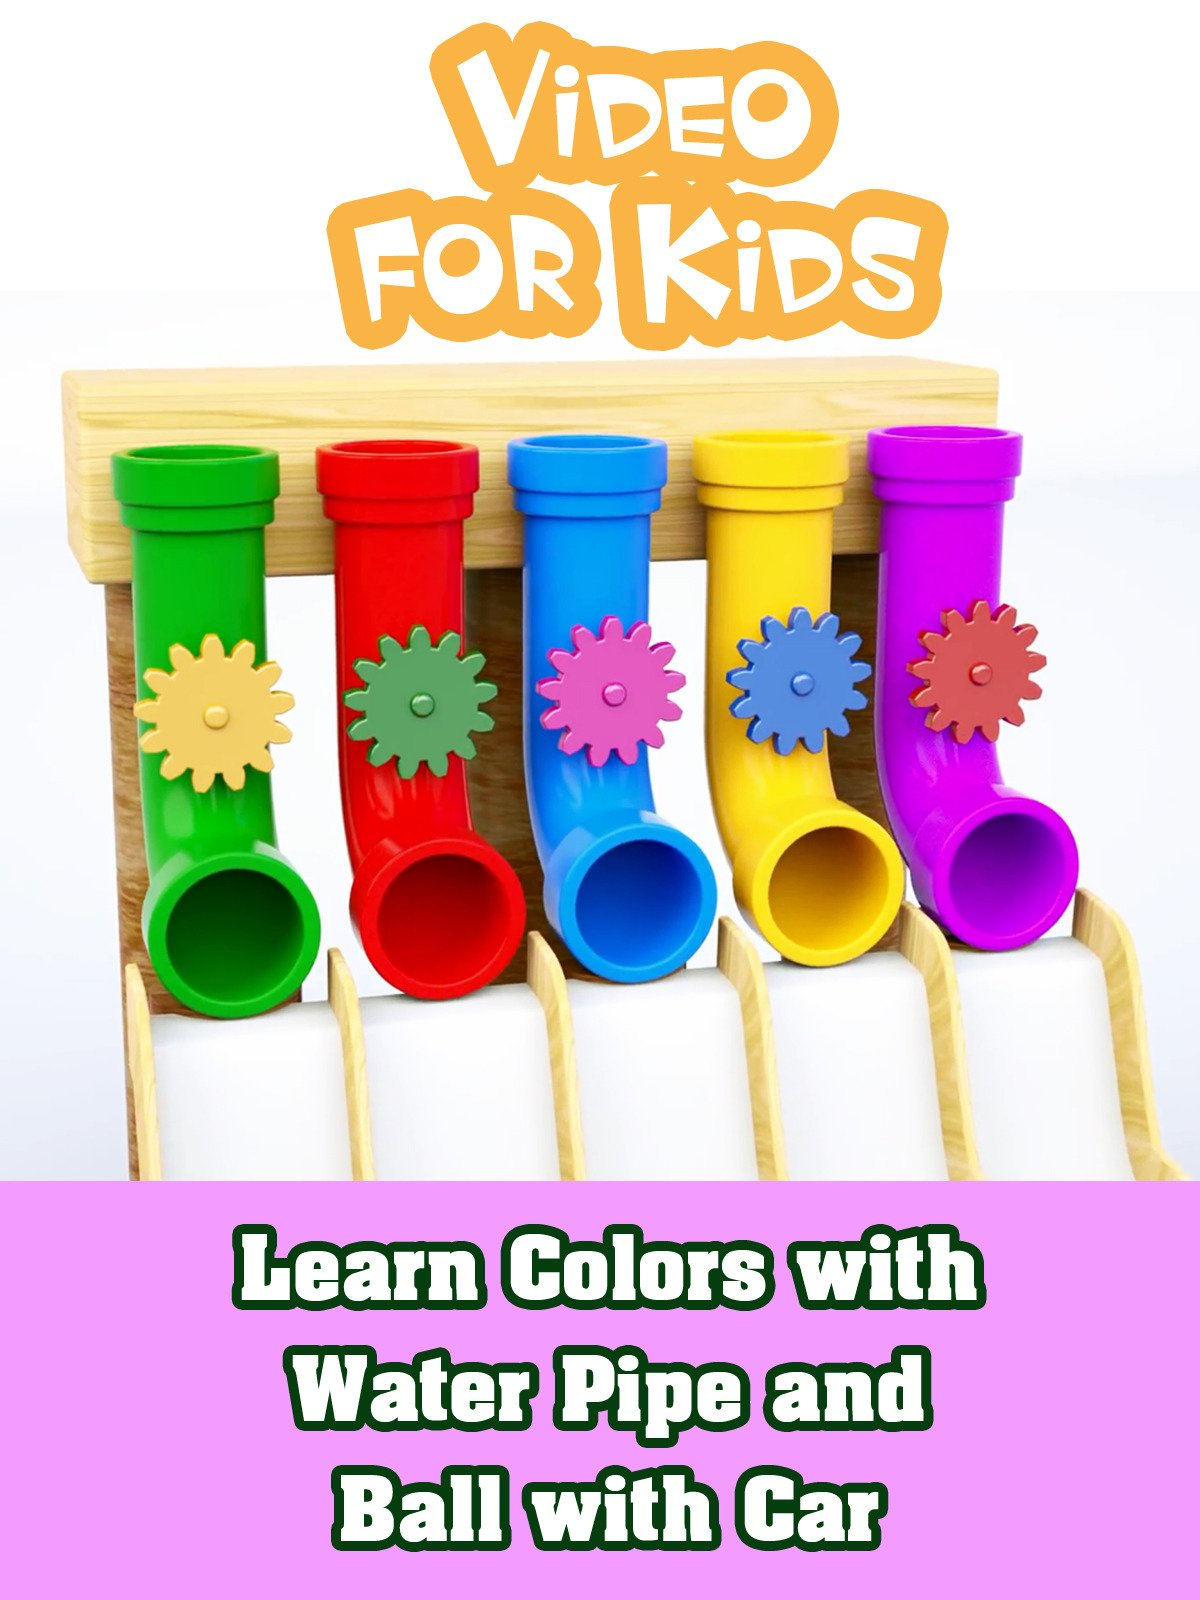 Learn Colors with Water Pipe and Ball with Car